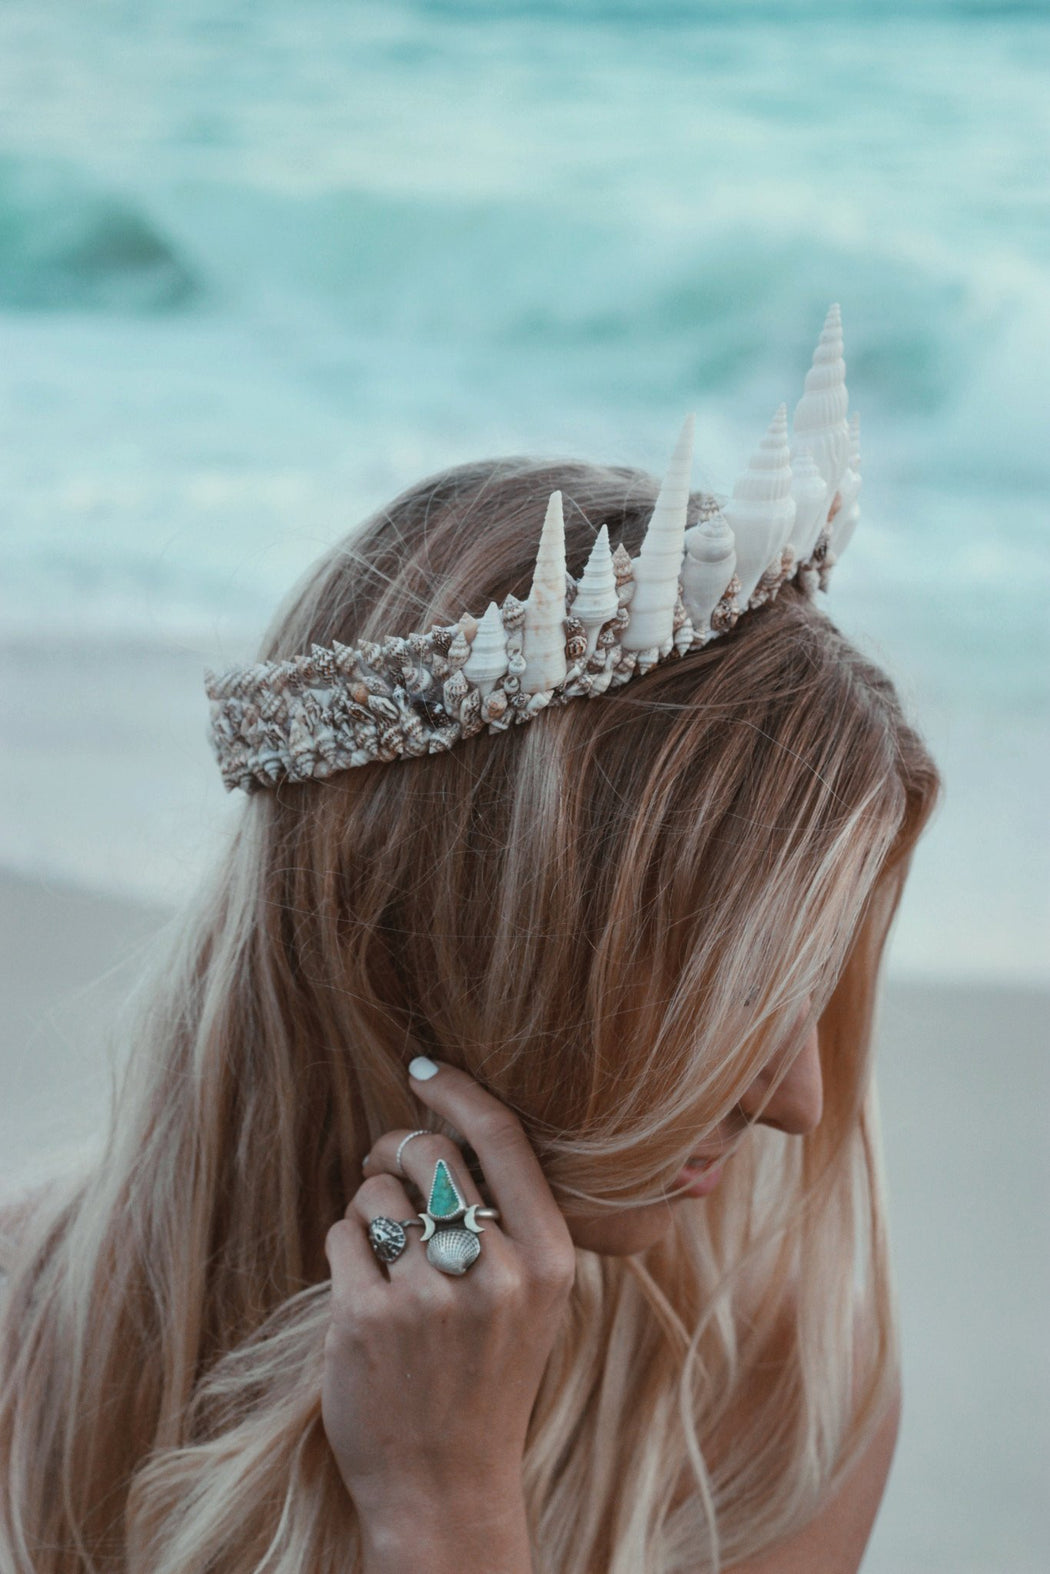 La Jolla Mermaid Tiara - Wild & Free Jewelry